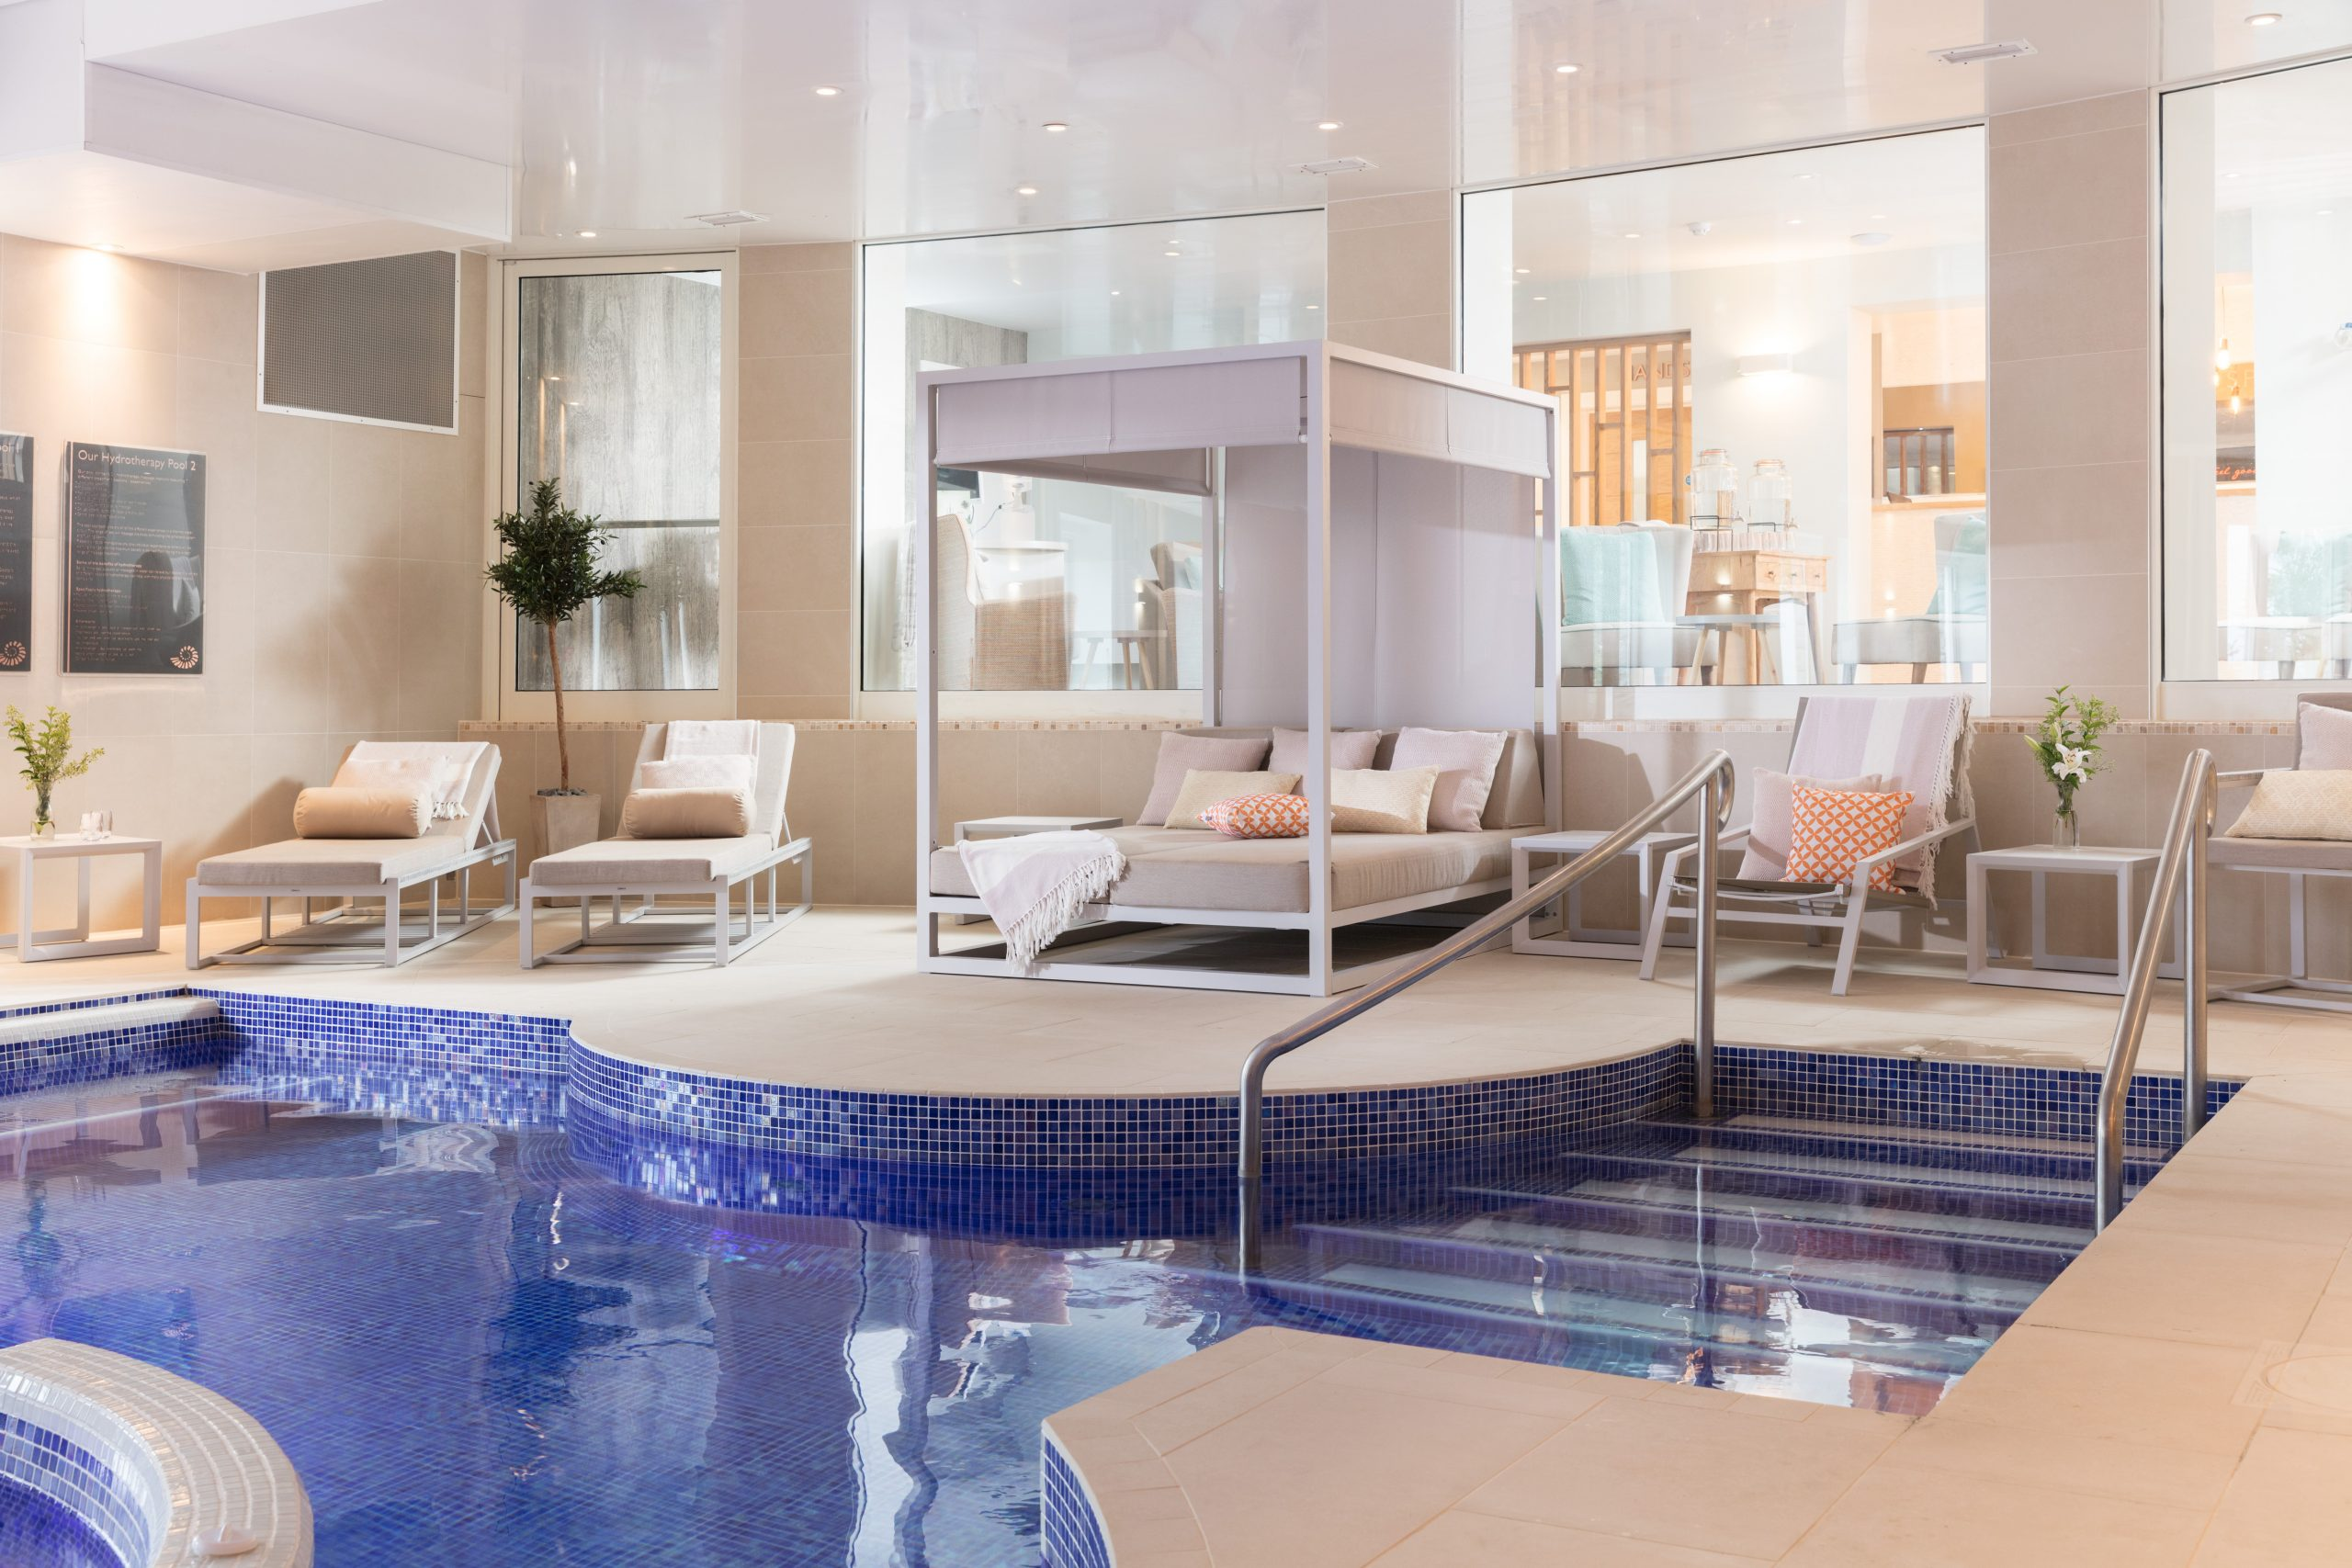 St Michaels Spa Hydrotherapy Pool